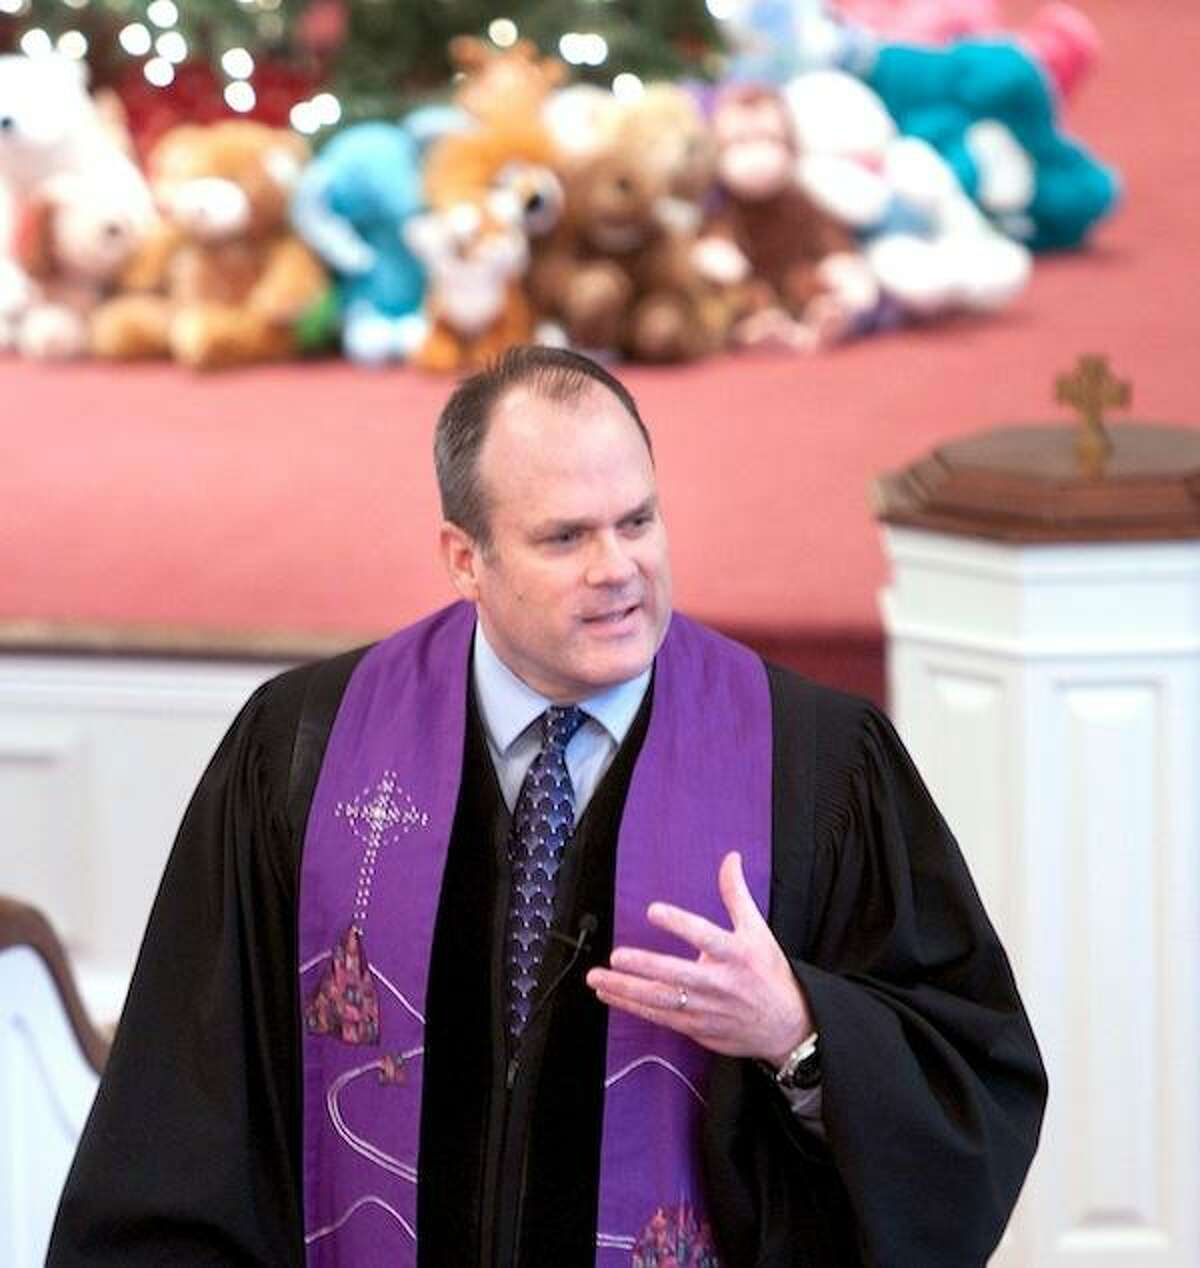 Rev. Matthew Crebbin, senior pastor, speaks to the congregation during worship service at the Newtown Congregational Church on Sunday morning 12/16/2012.Photo by Arnold Gold/New Haven Register